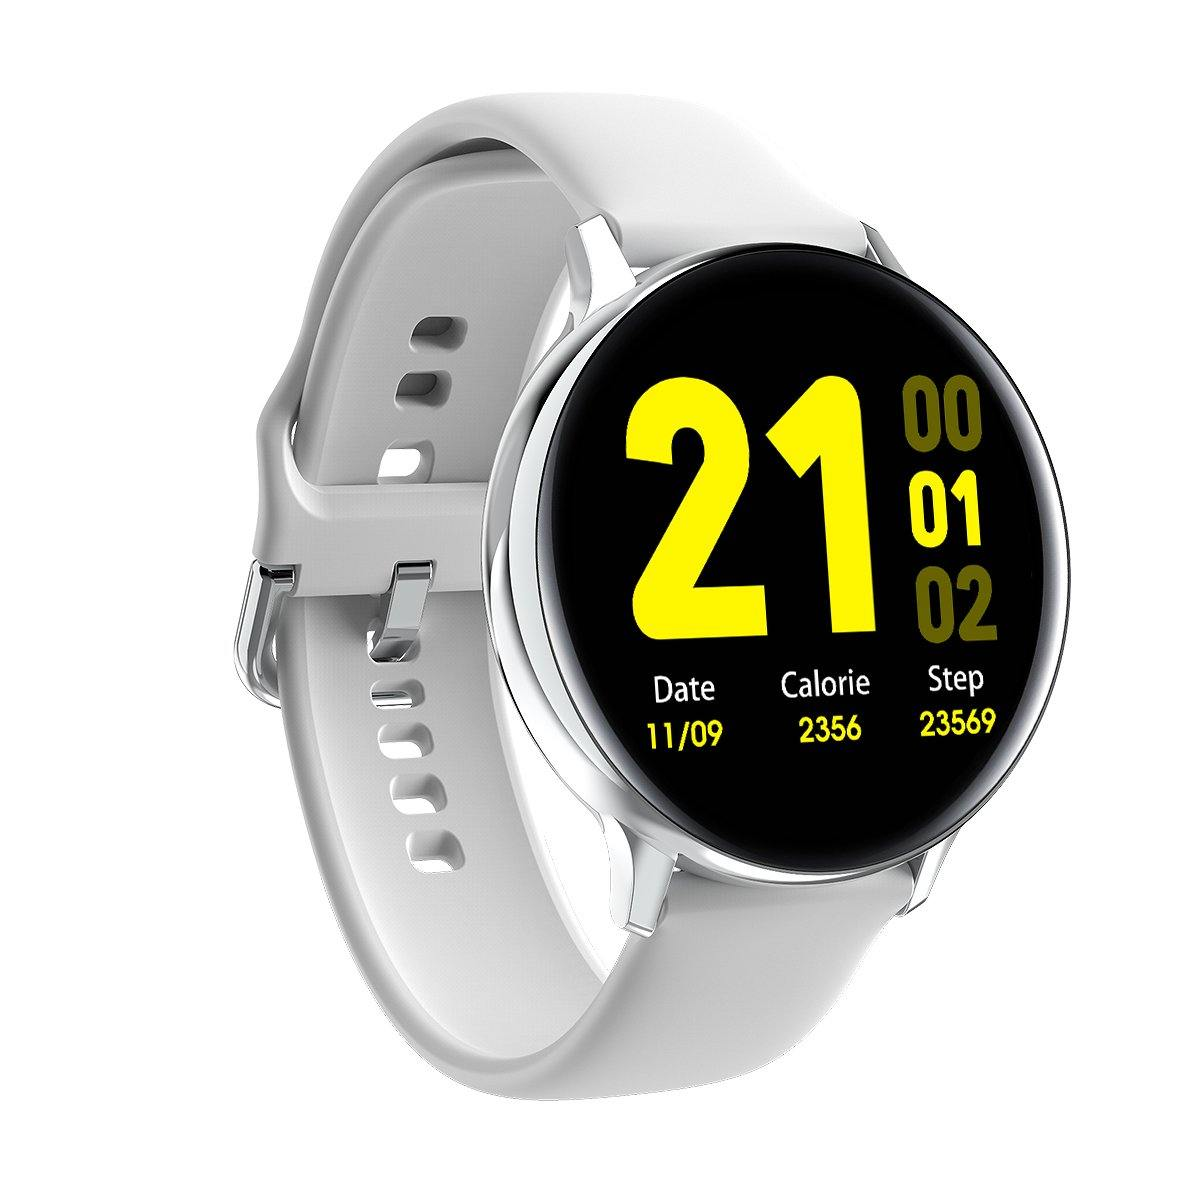 Microwear S20 Fitness/Smartwatch - White Silicon